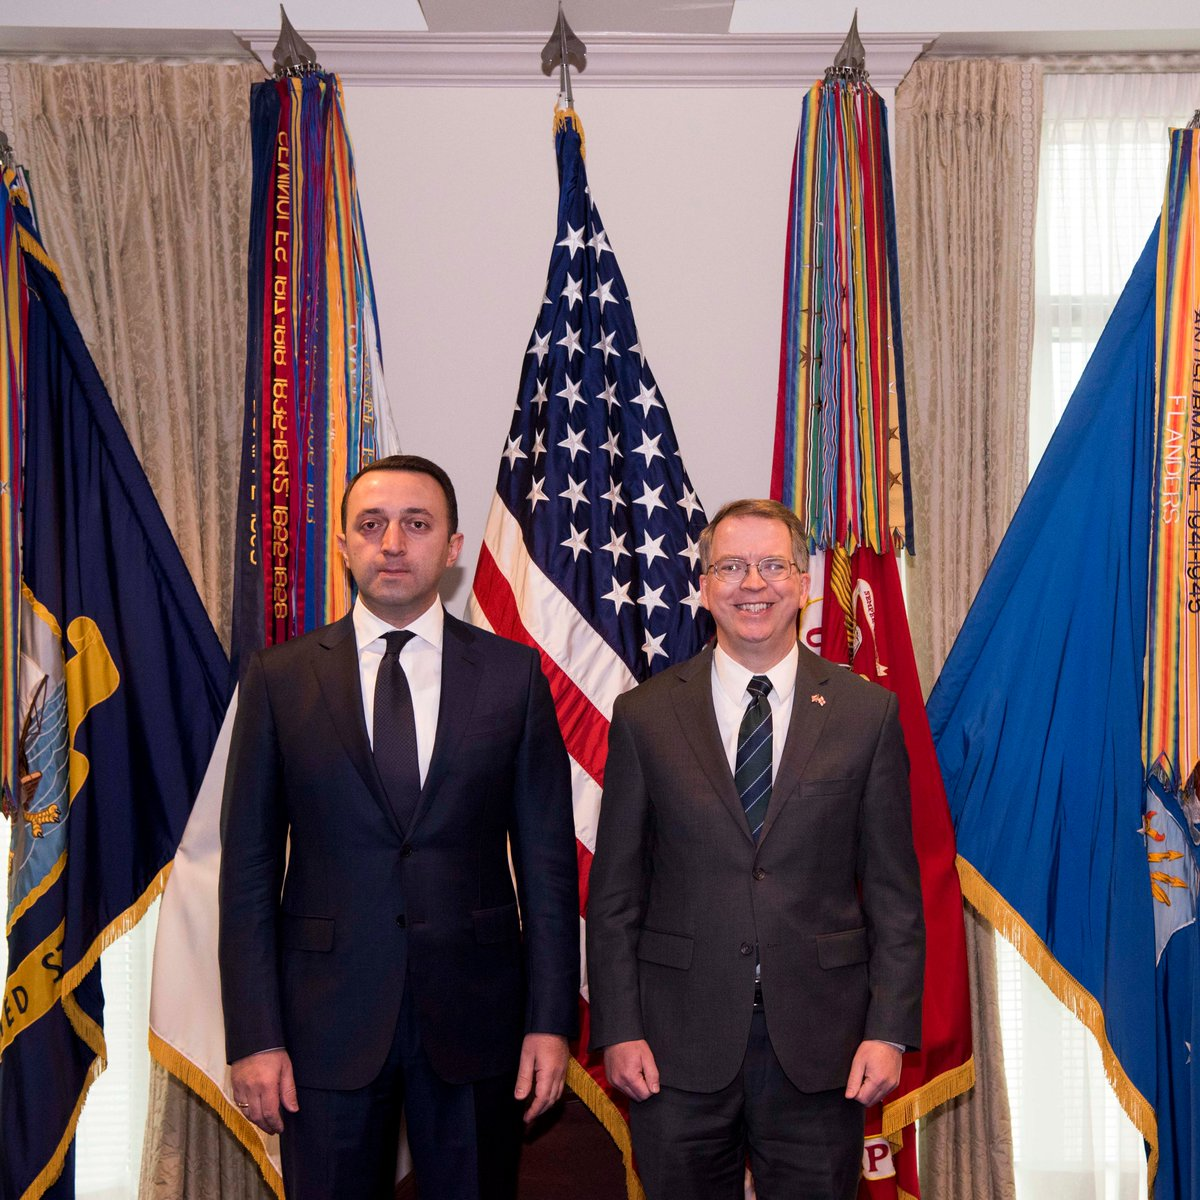 It was an honor to host Georgian Minister of Defense Garibashvili at the Pentagon today. Our strategic partnership has never been stronger and our support for Georgia's independence, sovereignty, and territorial integrity is unwavering! #GharibashviliGe, @ModGovGe